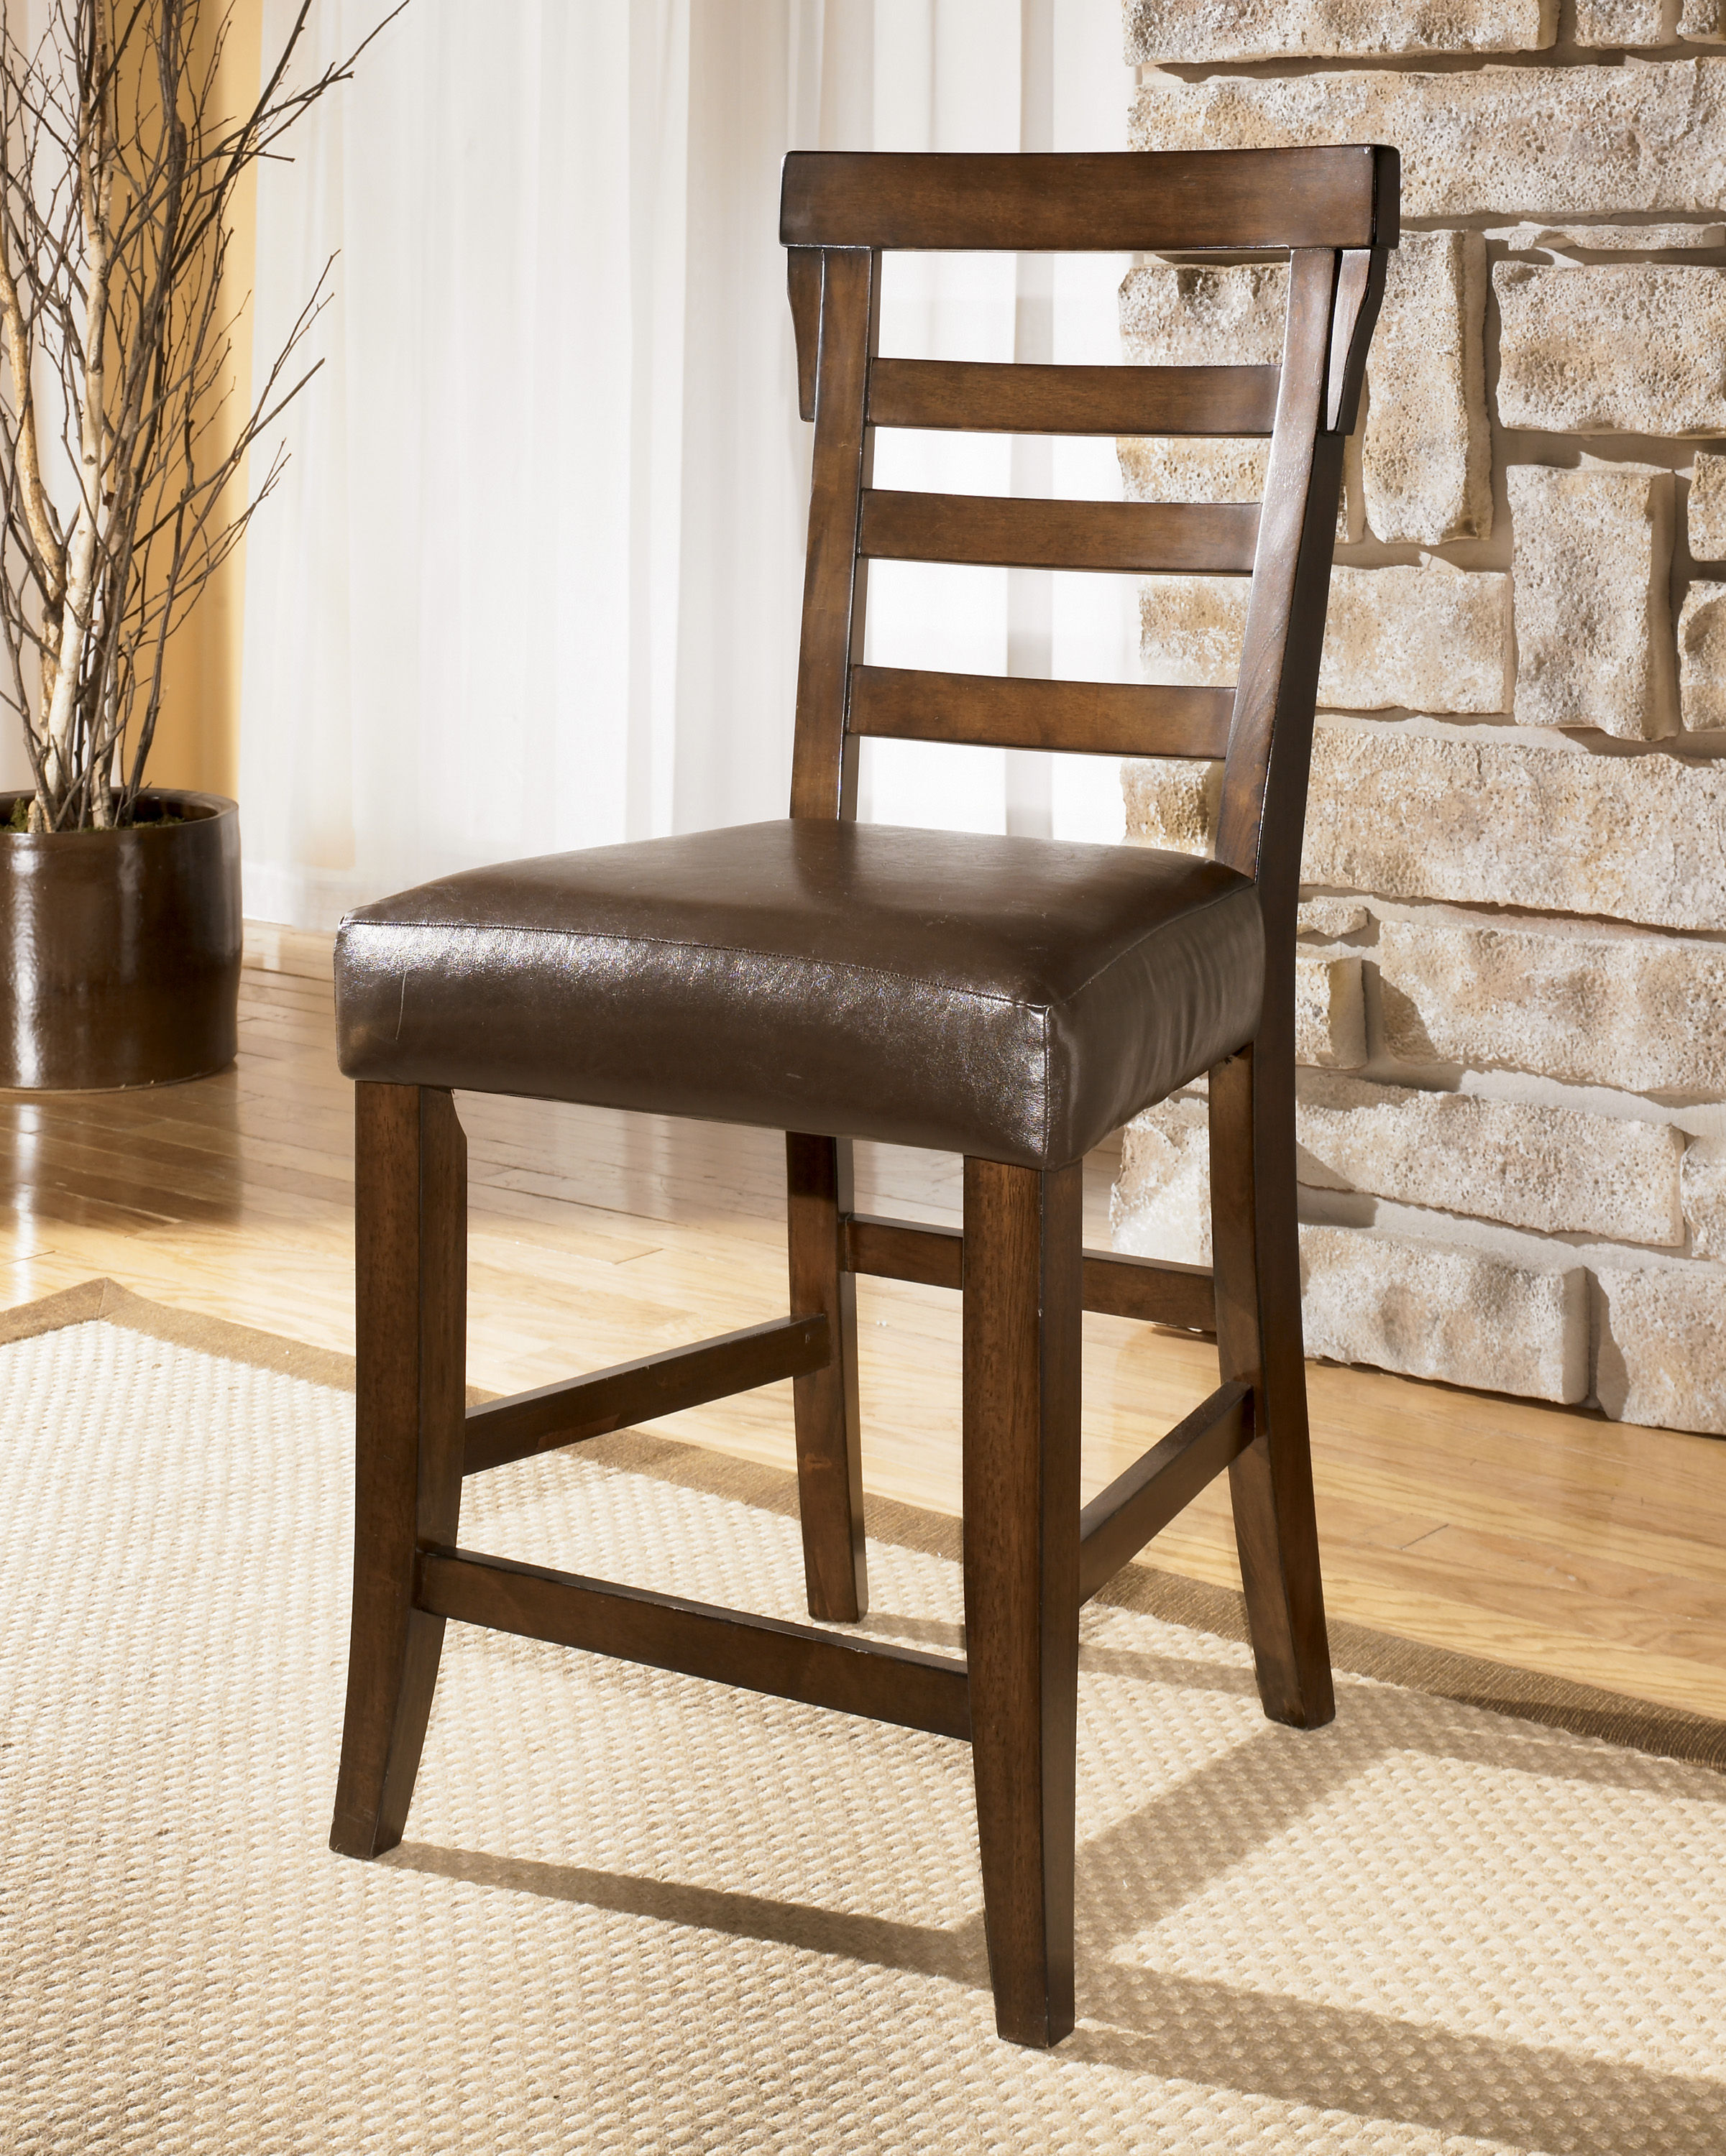 Magnificent 2 Pinderton Dark Brown Faux Leather Wood 24 Inch Bar Stools Evergreenethics Interior Chair Design Evergreenethicsorg